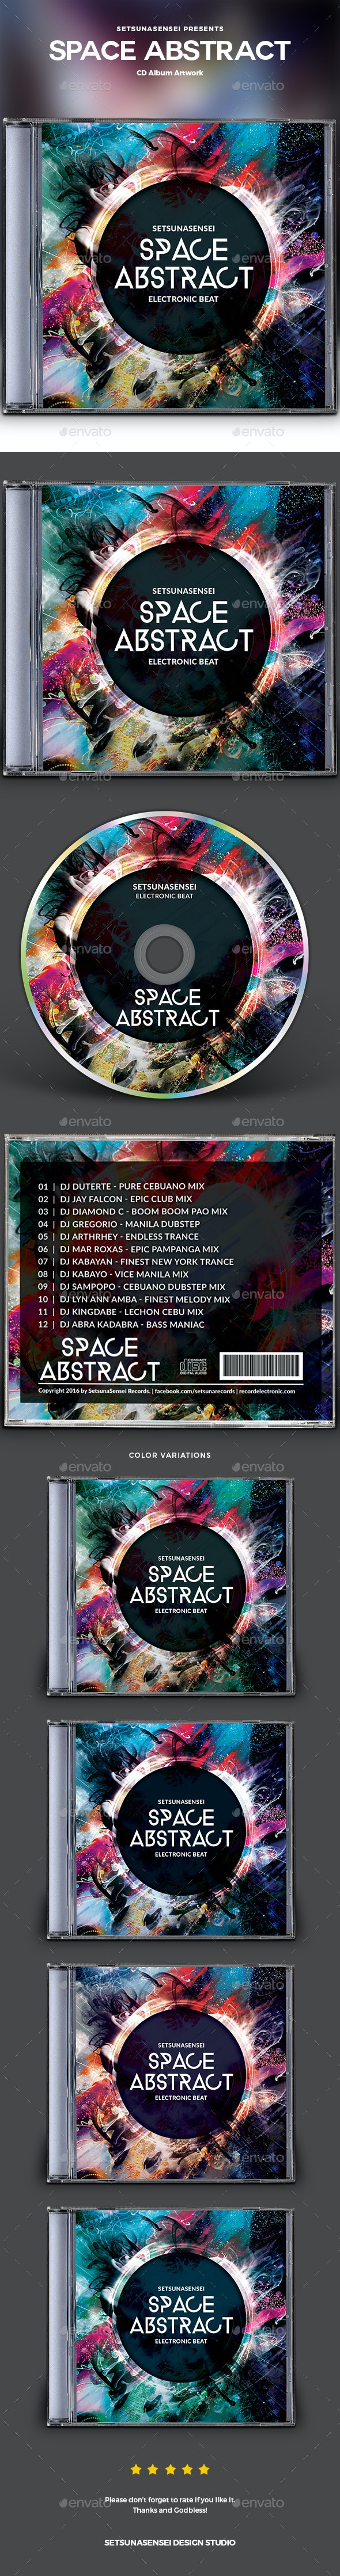 Space Abstract CD Album Artwork